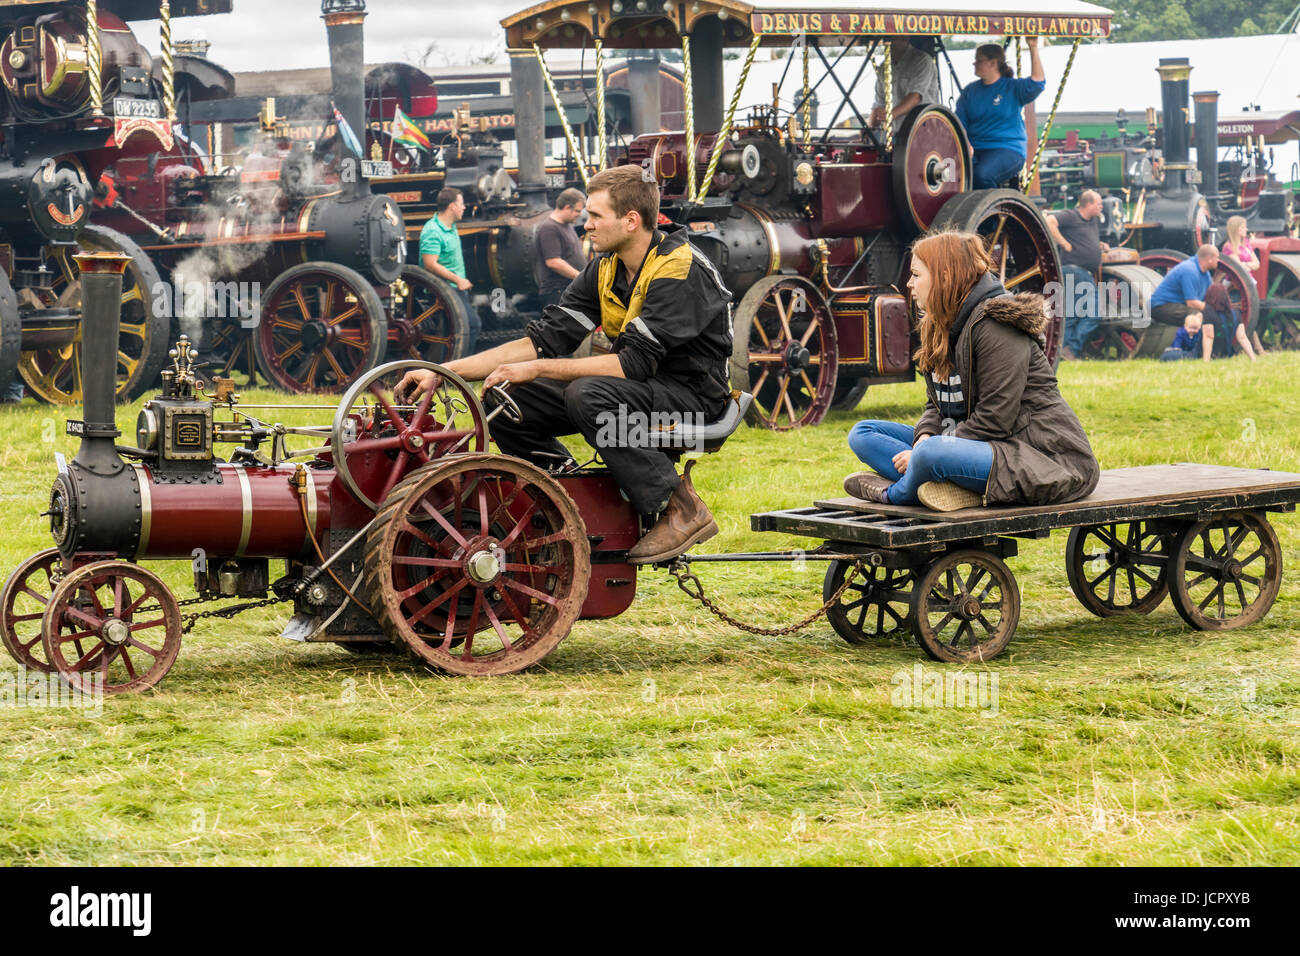 Cheshire steam show England - Stock Image